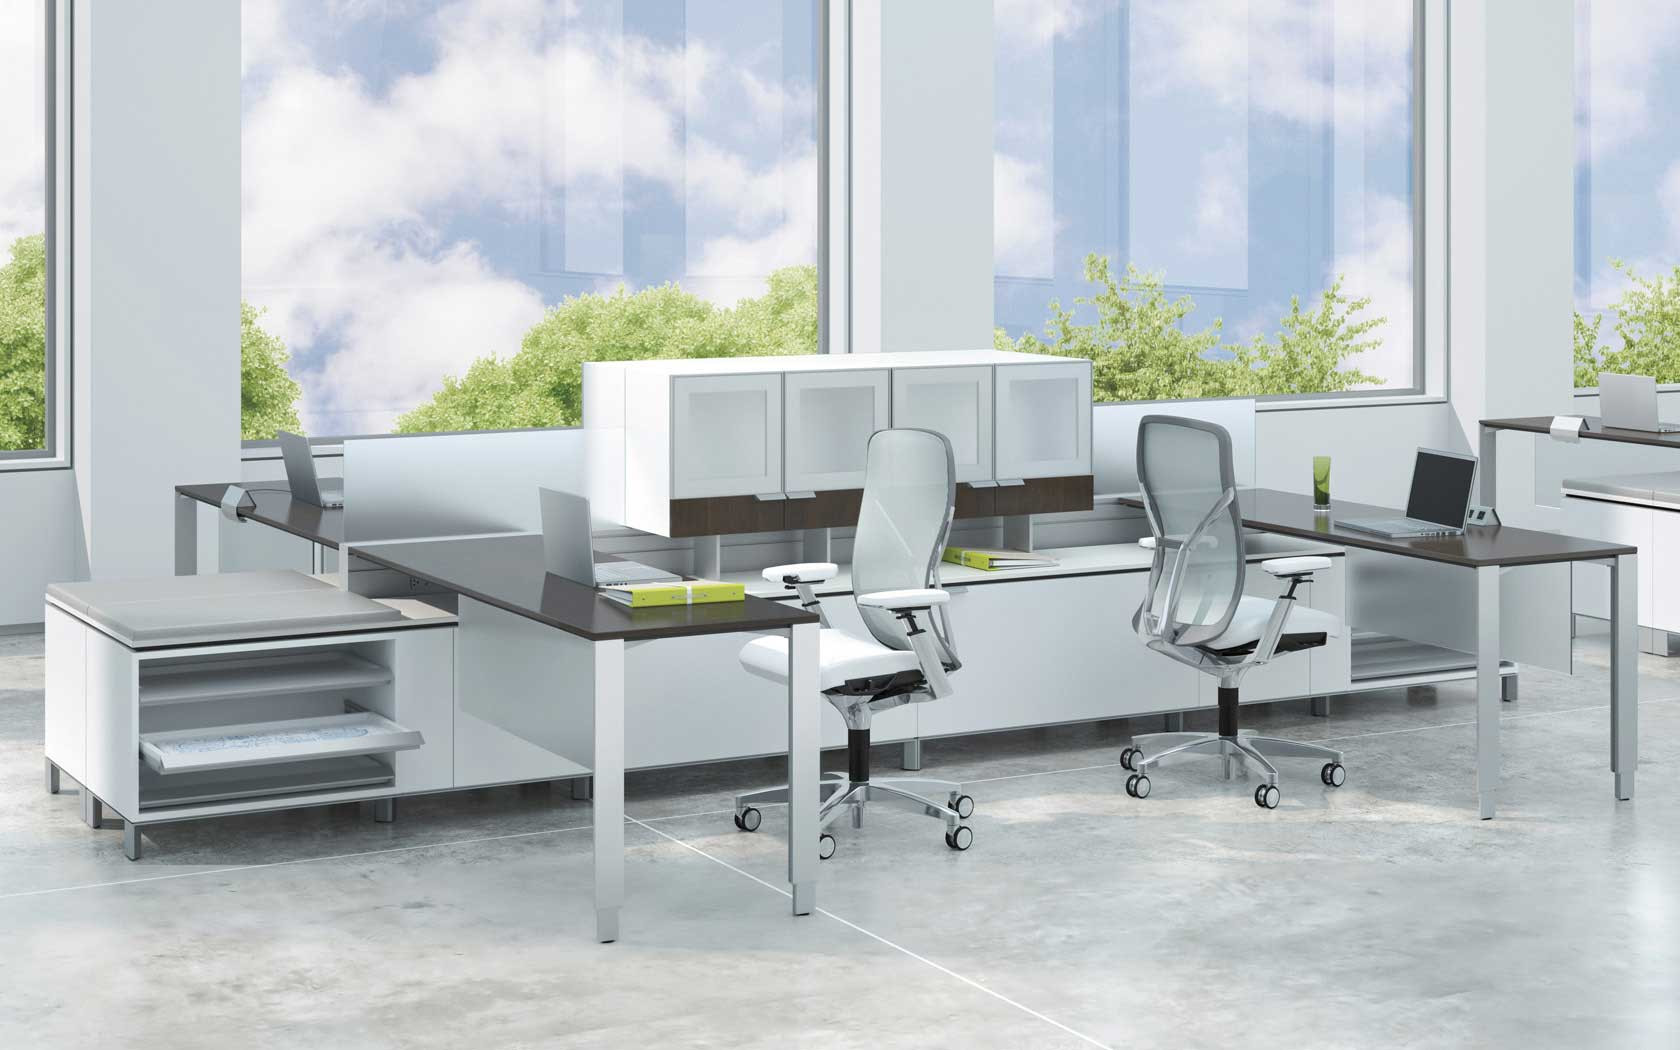 Best ideas about Commercial Office Furniture . Save or Pin Modern fice Furniture Now.